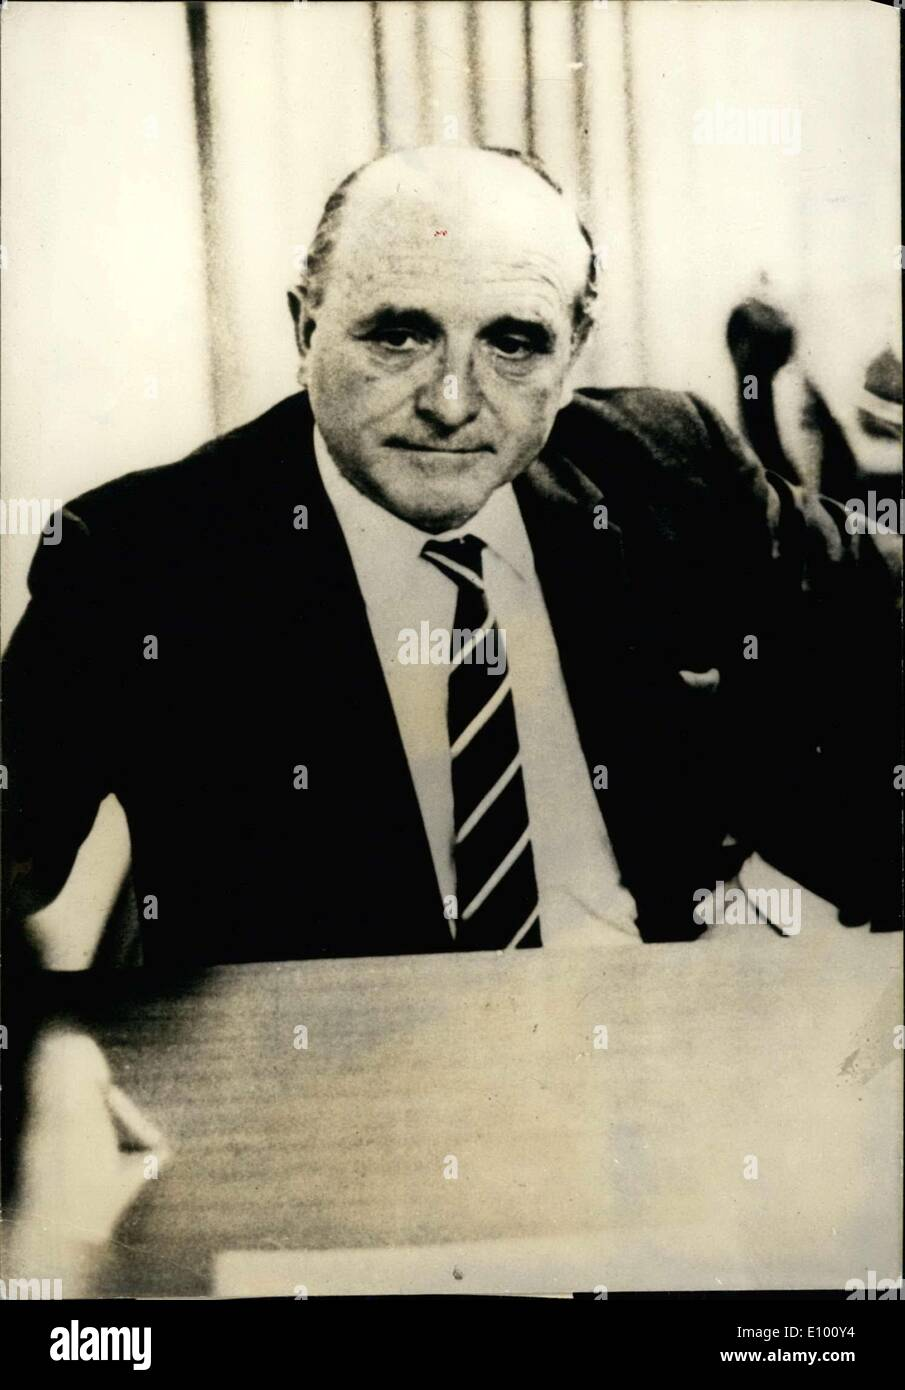 Feb. 05, 1972 - Anthropological experts arrived at the conclusion that the former Nazi, Klaus Barbie (now Altmann) is the Butcher of Lyon. Klaus Barbie was the head of the Lyon Gestapo, and he is responsible for the torture and death of French Resistance leader Jean Moulin. - Stock Image